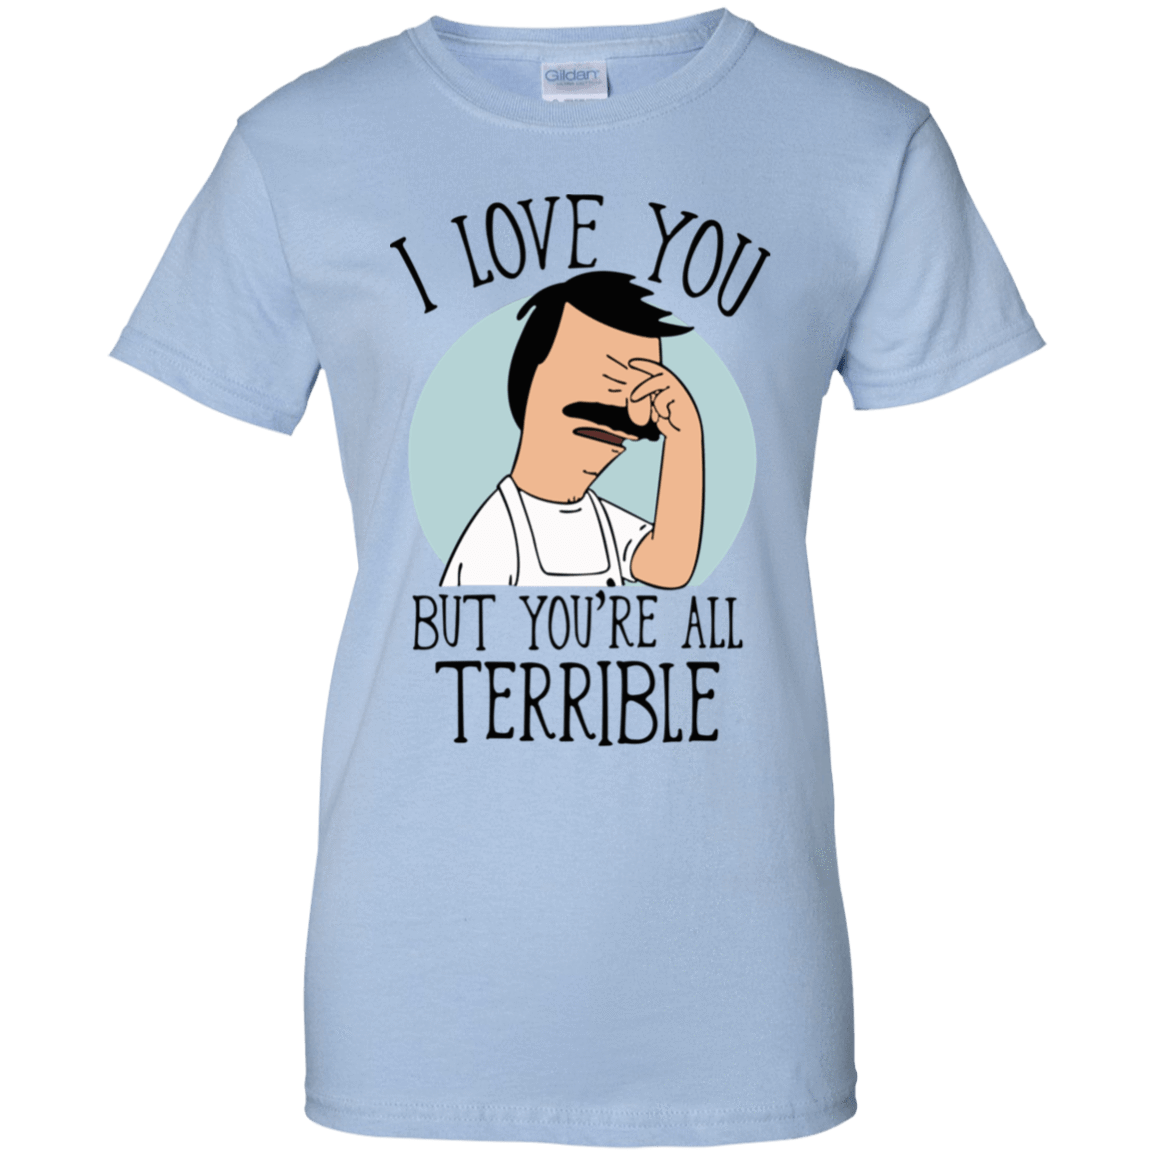 Bob's Burgers: I Love You But You're All Terrible 939-9257-72789301-44716 - Tee Ript